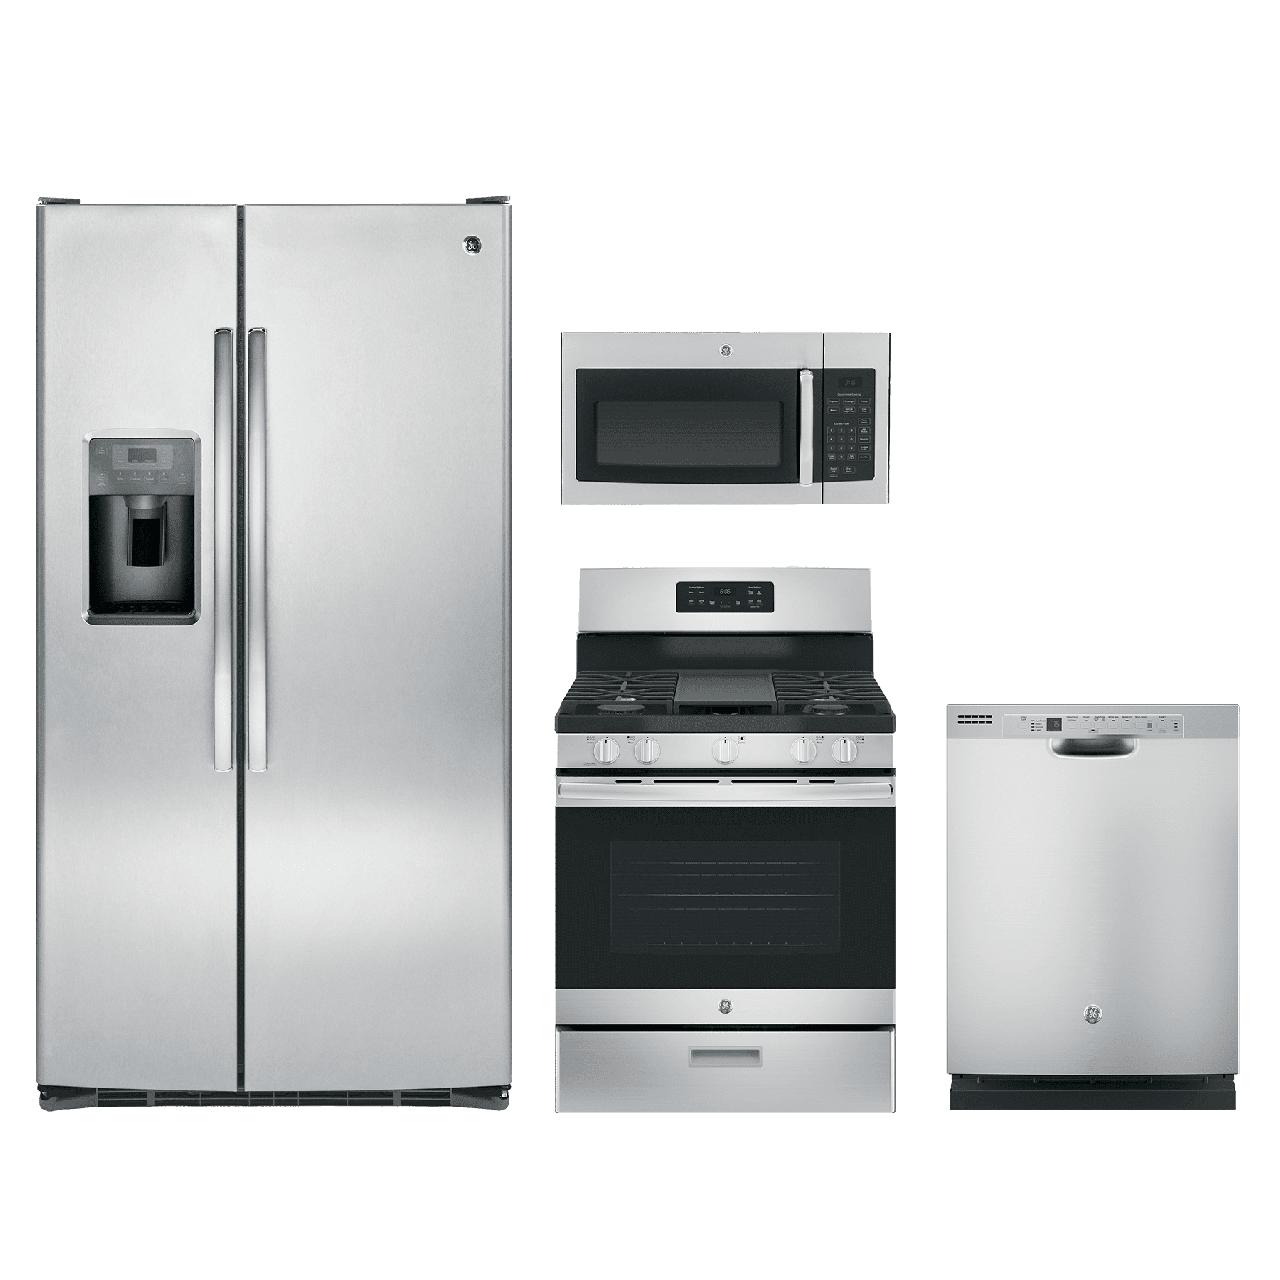 liances lowes steel liance package packages sears furniture black buy new for al re lg deals in samsung sams pros and best kitchenaid stainless kitchen appliance set cons whirlpool refrigerator